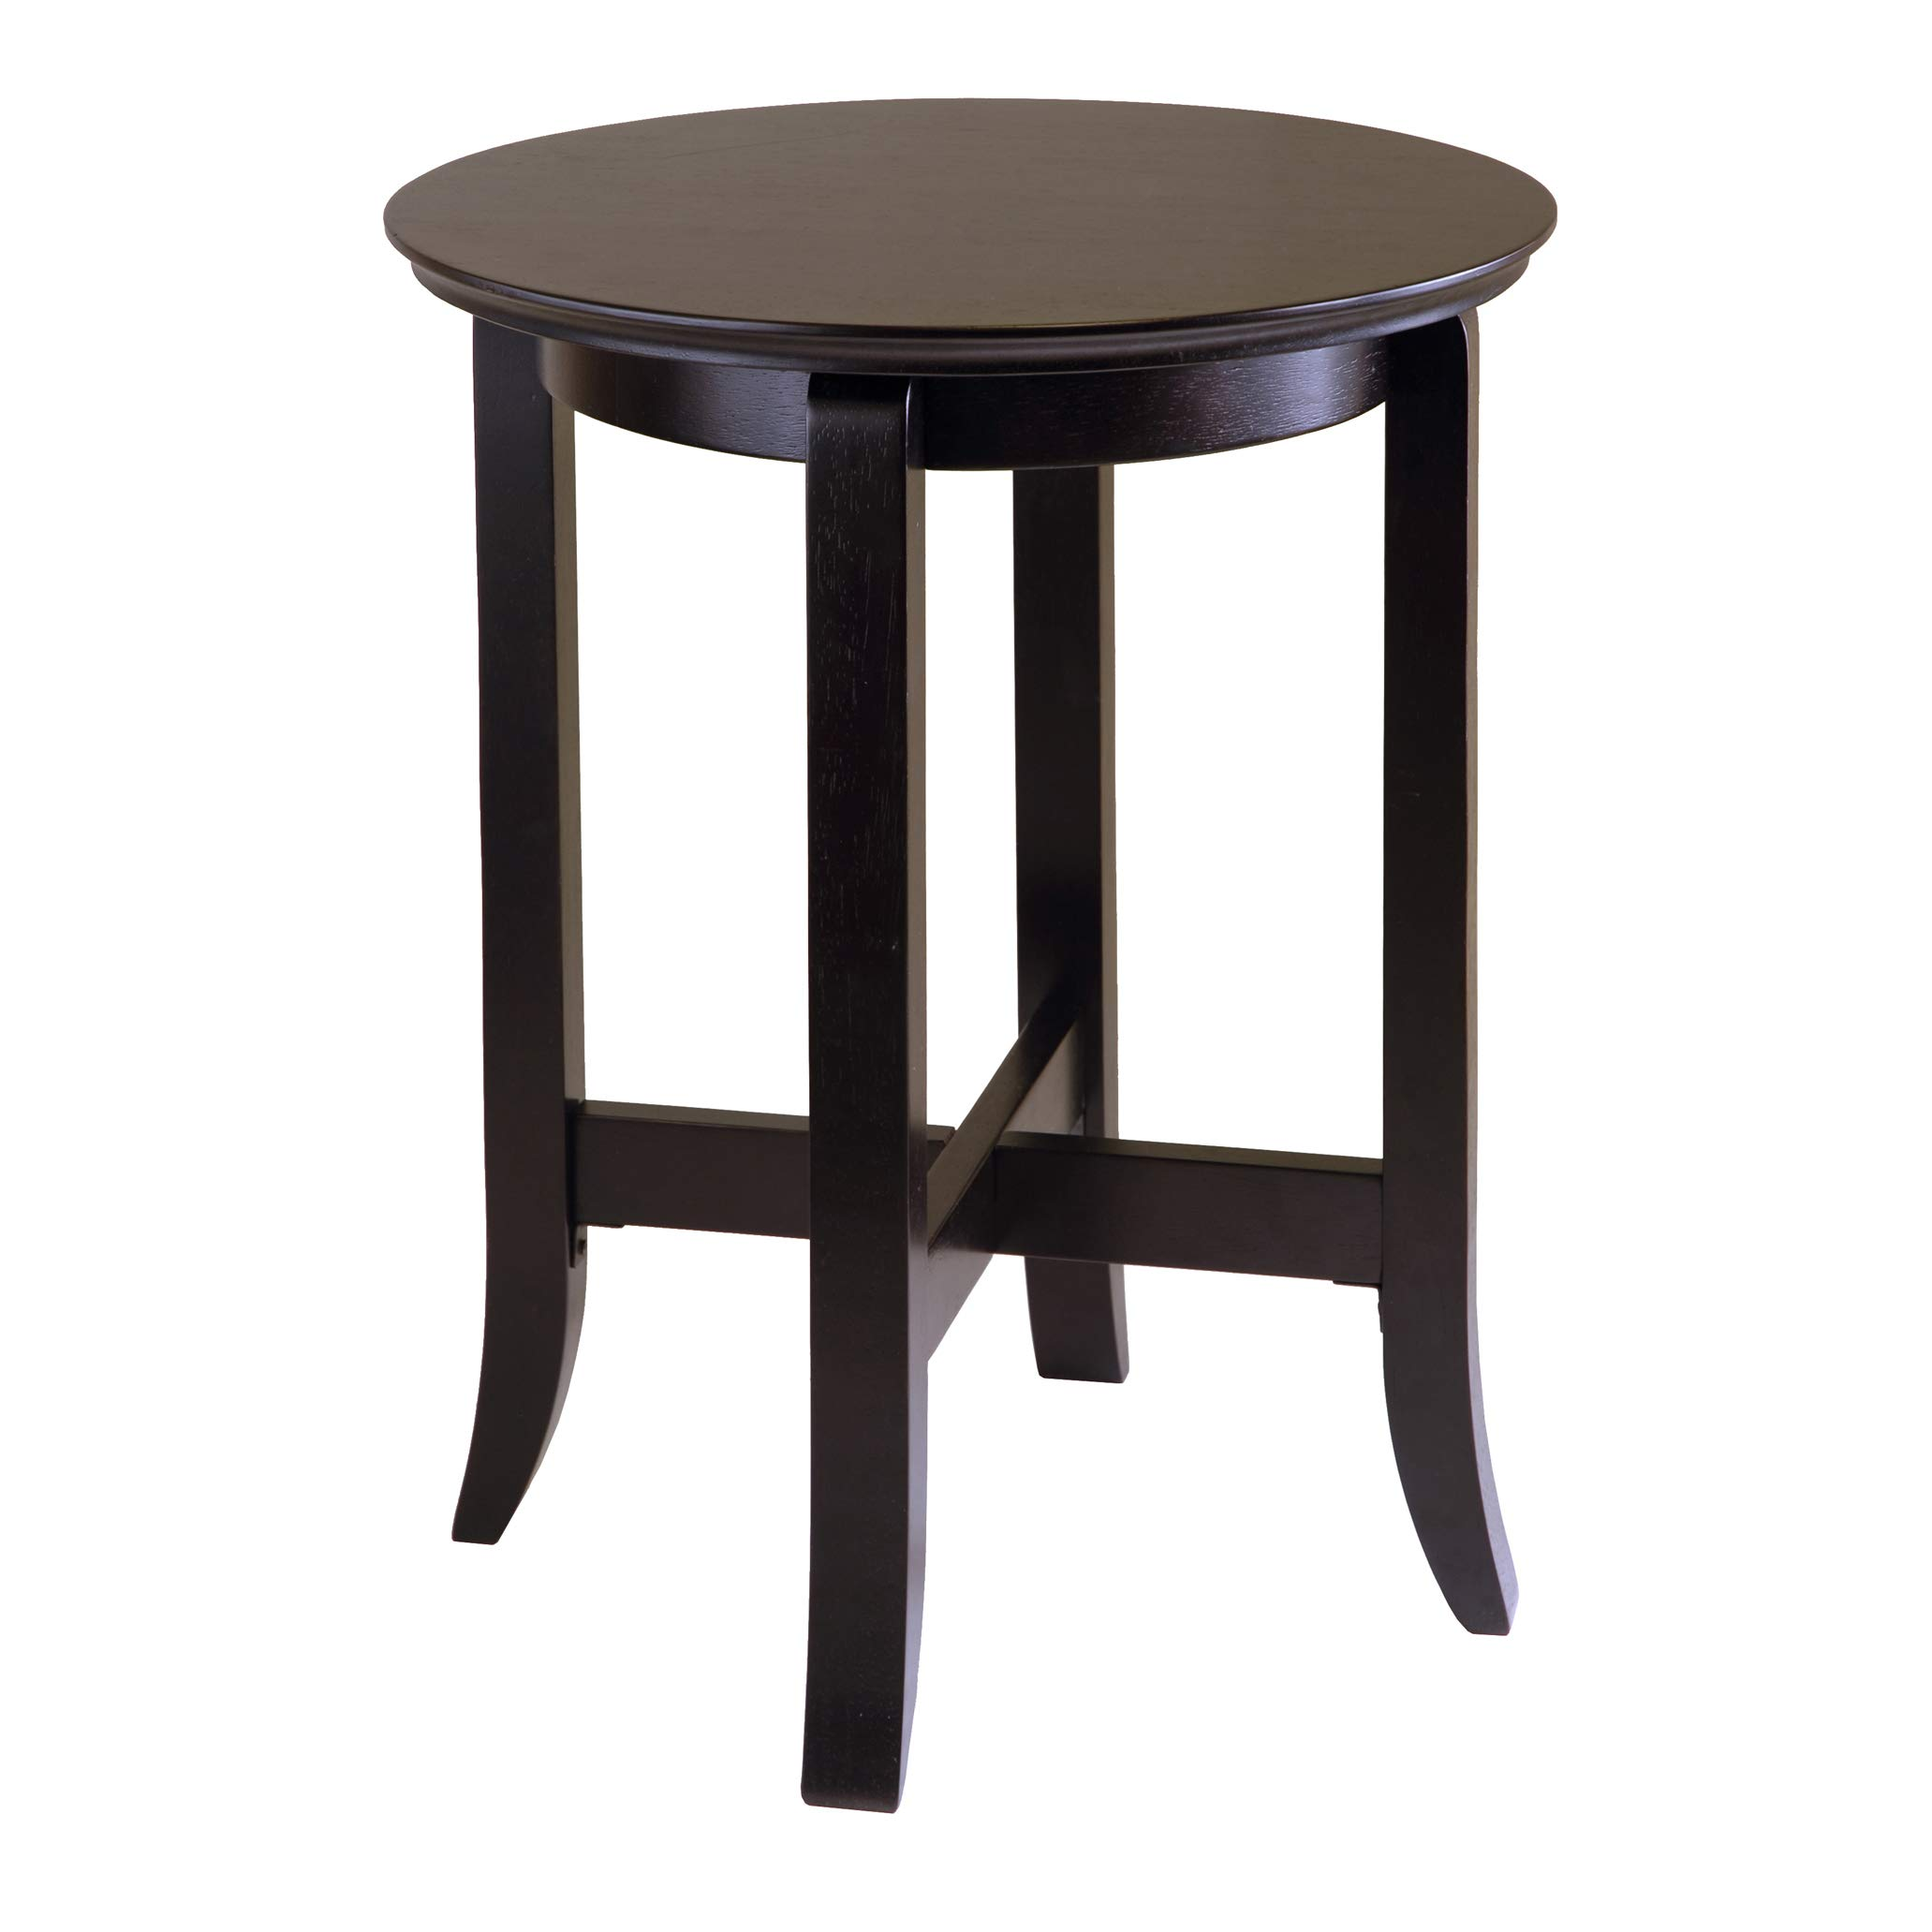 Winsome Wood 92019 Toby Occasional Table, Espresso by Winsome Wood